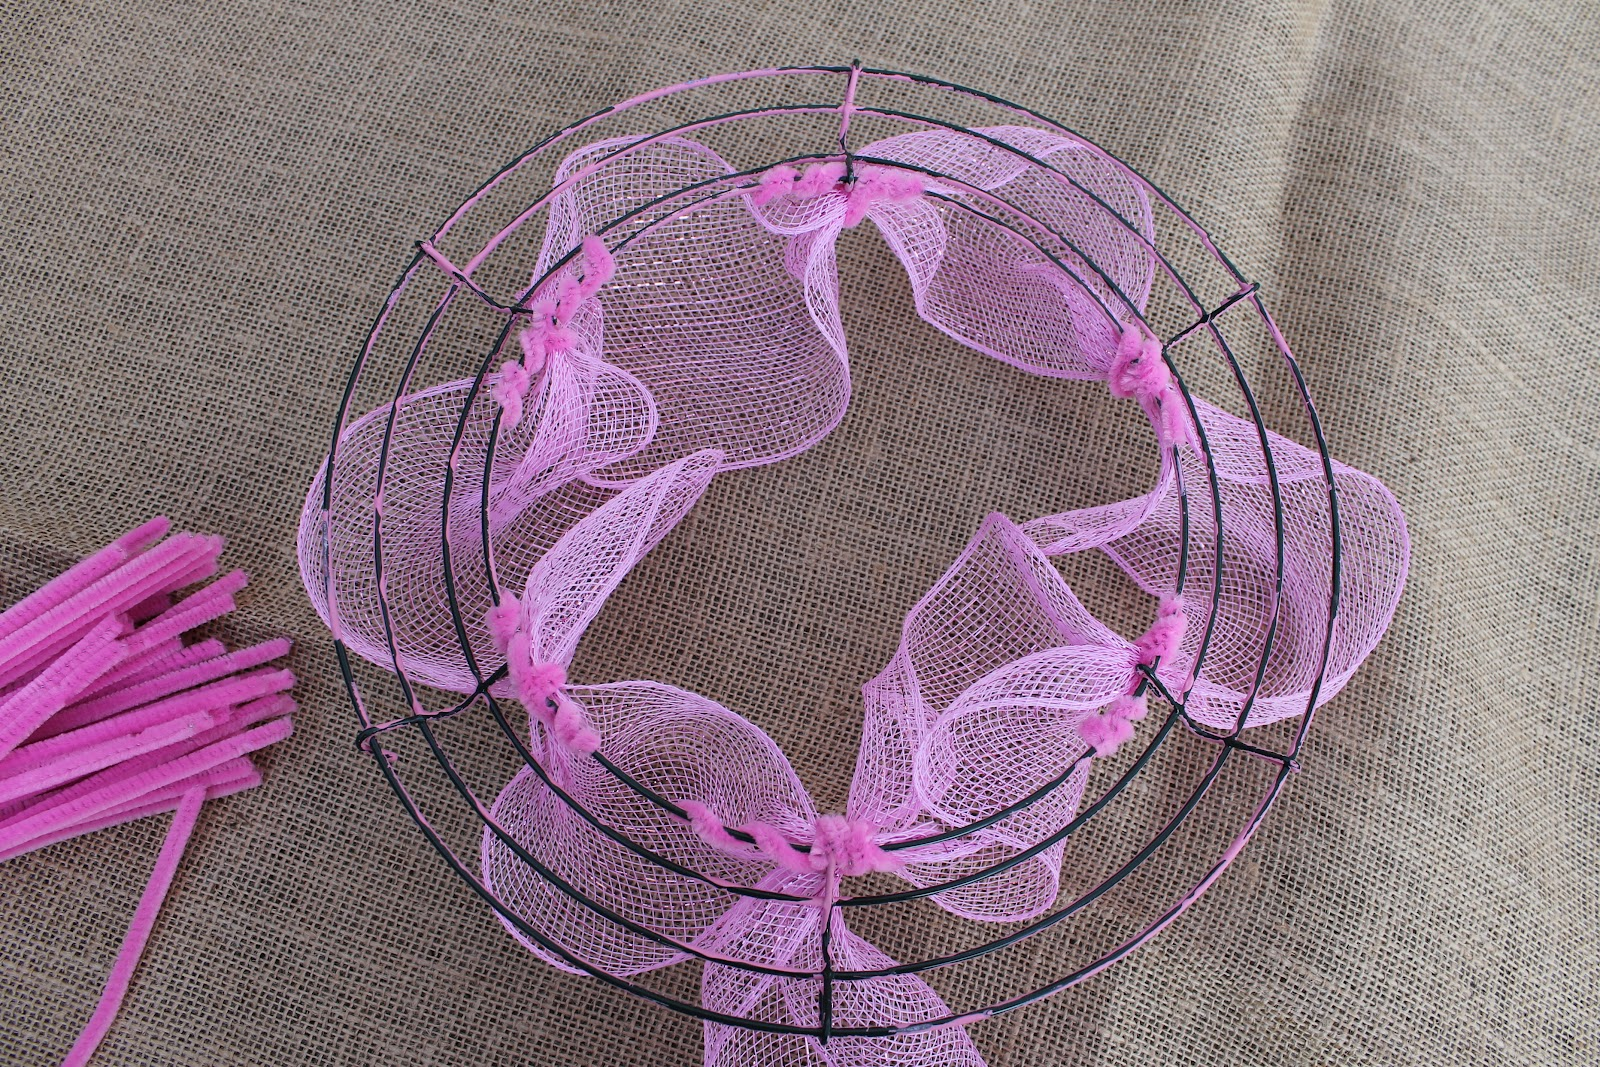 How to Make Deco Mesh Wreaths